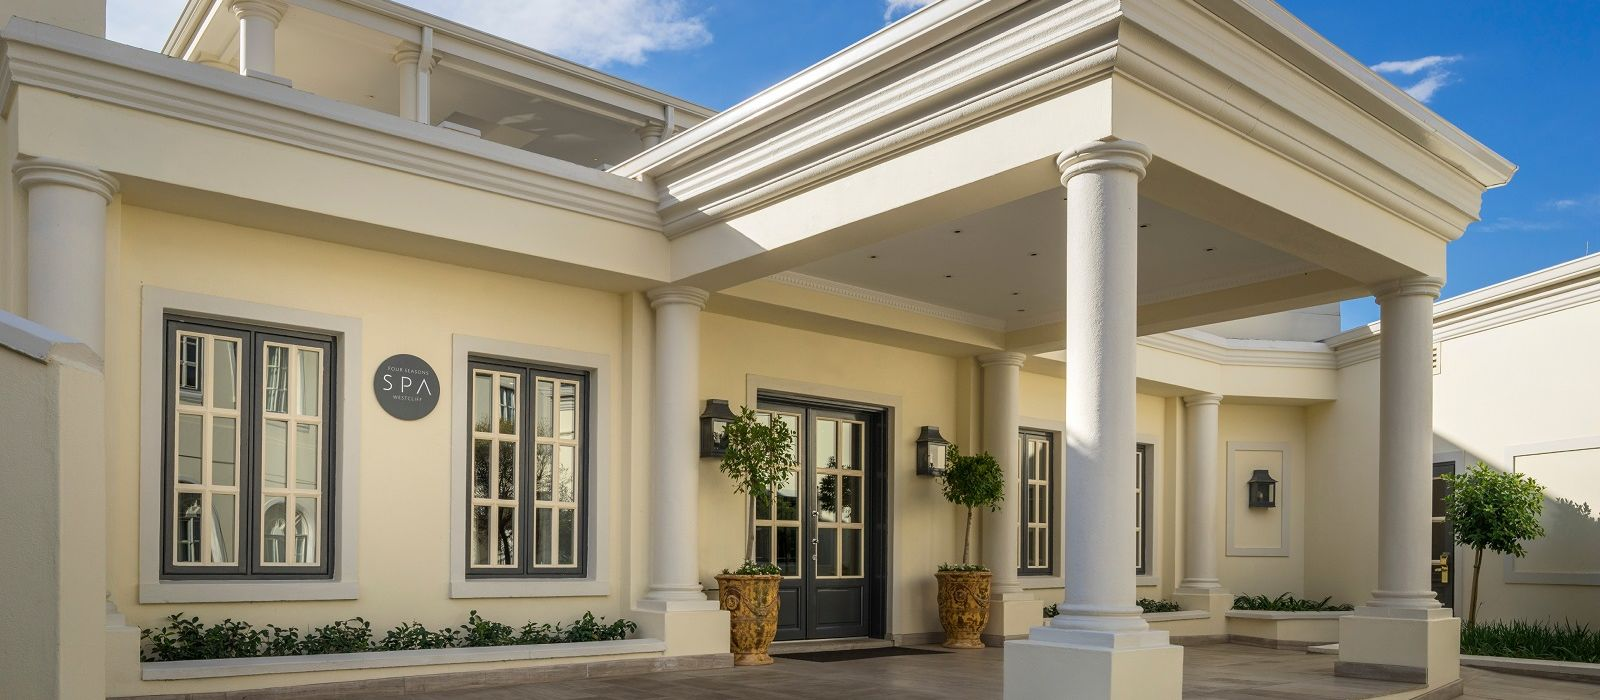 Hotel Four Seasons  The Westcliff South Africa